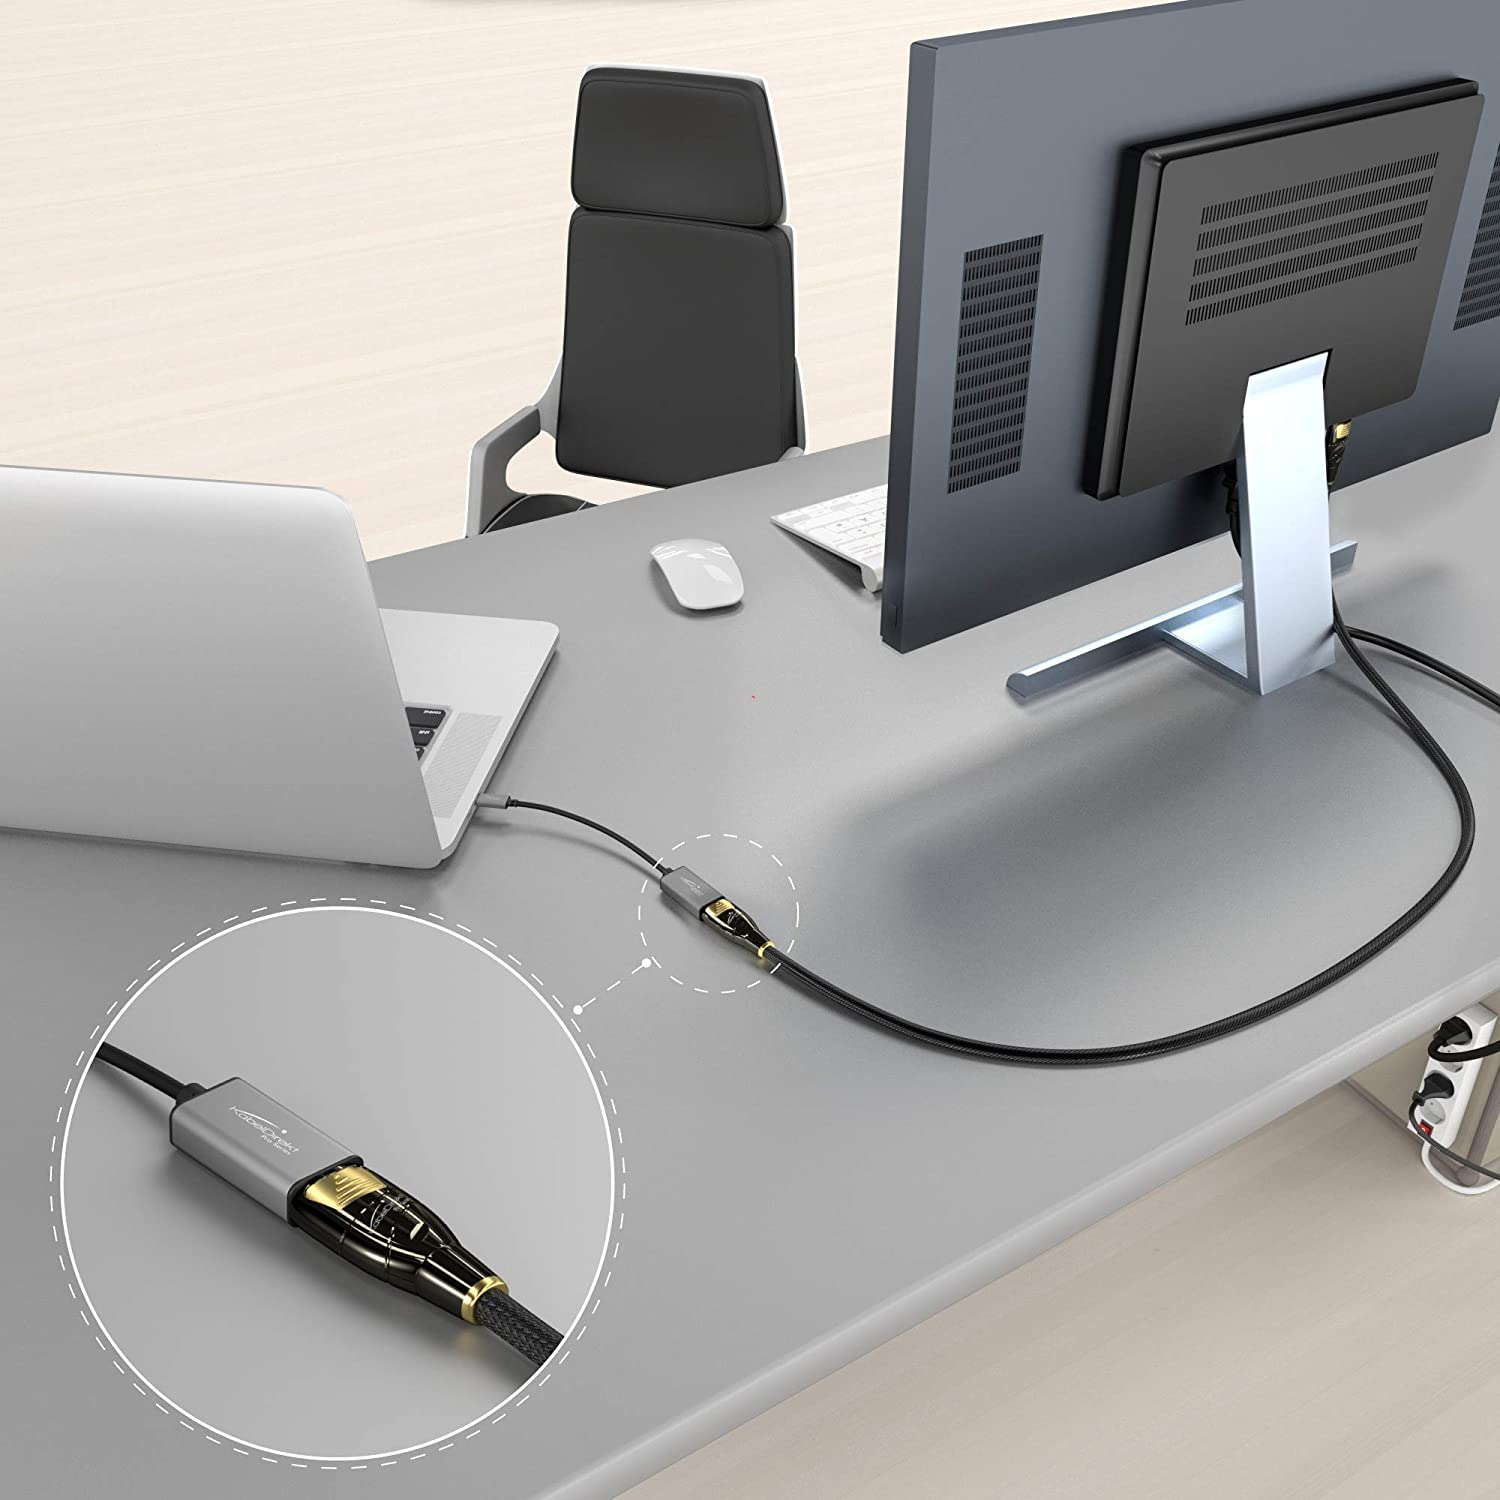 """6 inch - KabelDirekt - PRO Series 1091 USB C to DisplayPort DP Adapter up to 4K//60Hz, USB C 3.1 and Thunderbolt 3, Suitable for MacBook Pro 2016//2017, MacBook 12/"""", Chromebook Pixel, Other Devices"""